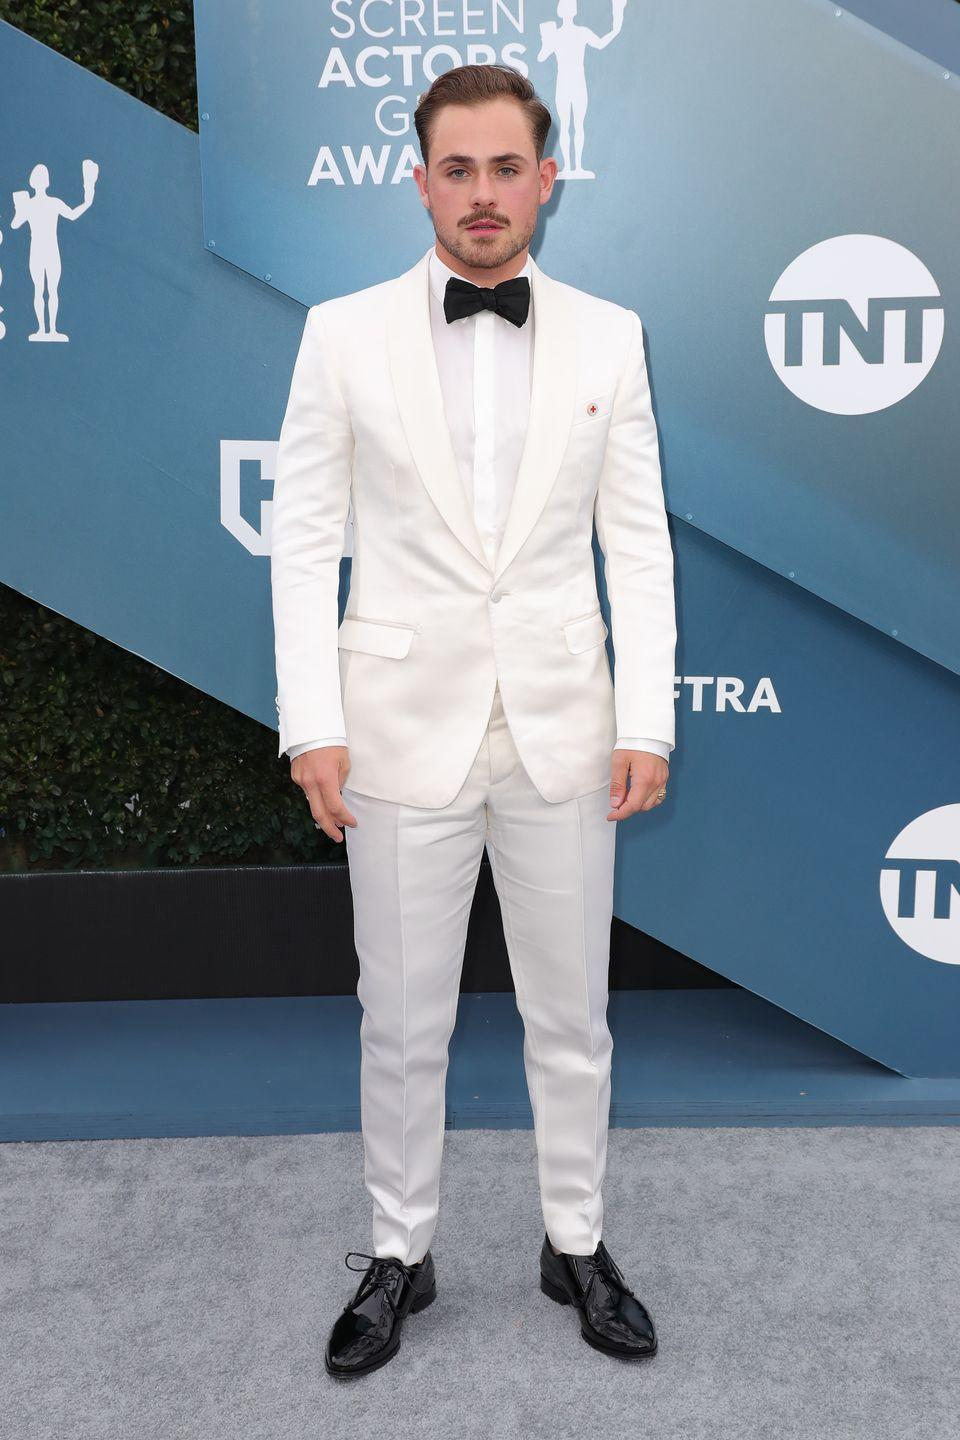 <p>Billy Hargrove might be from Hawkins, Indiana, but the actor who portrays him on <em>Stranger Things </em>turns out to be from Perth. </p>